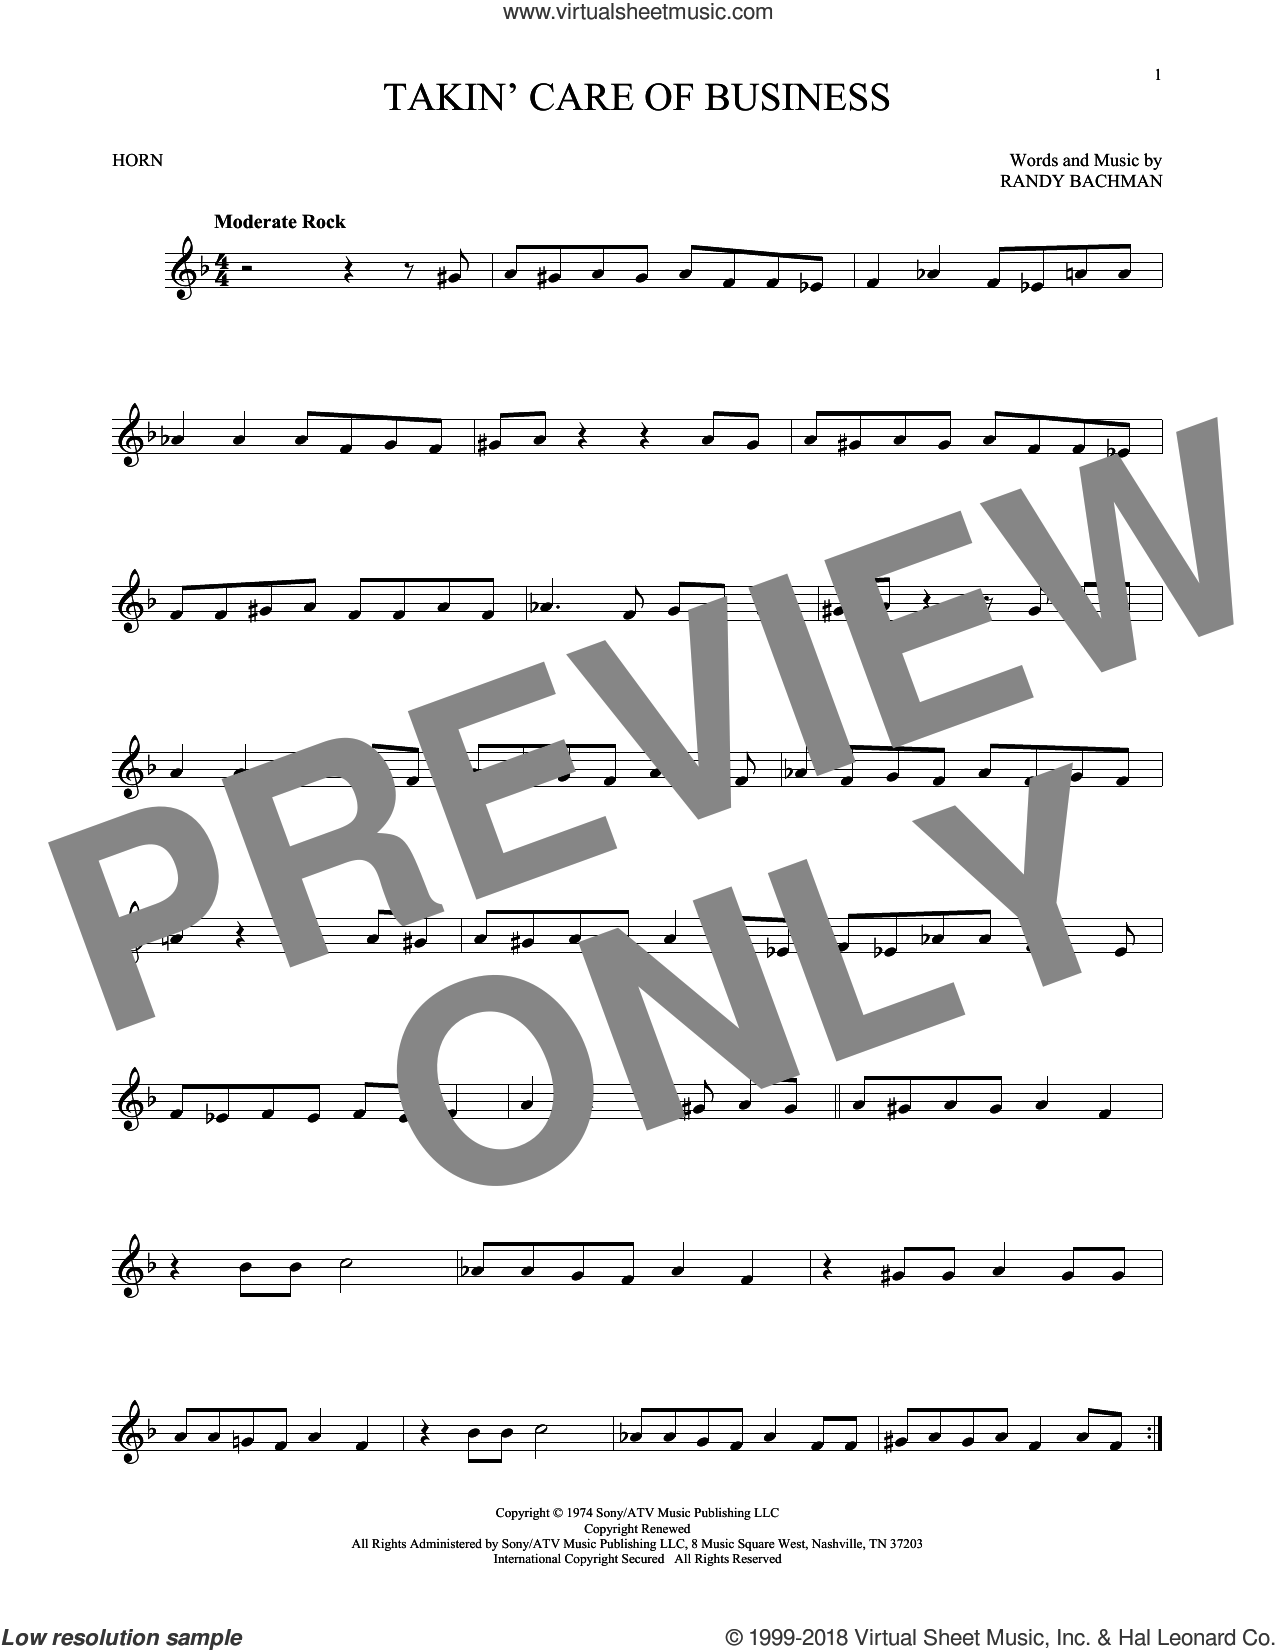 Takin' Care Of Business sheet music for horn solo by Randy Bachman. Score Image Preview.